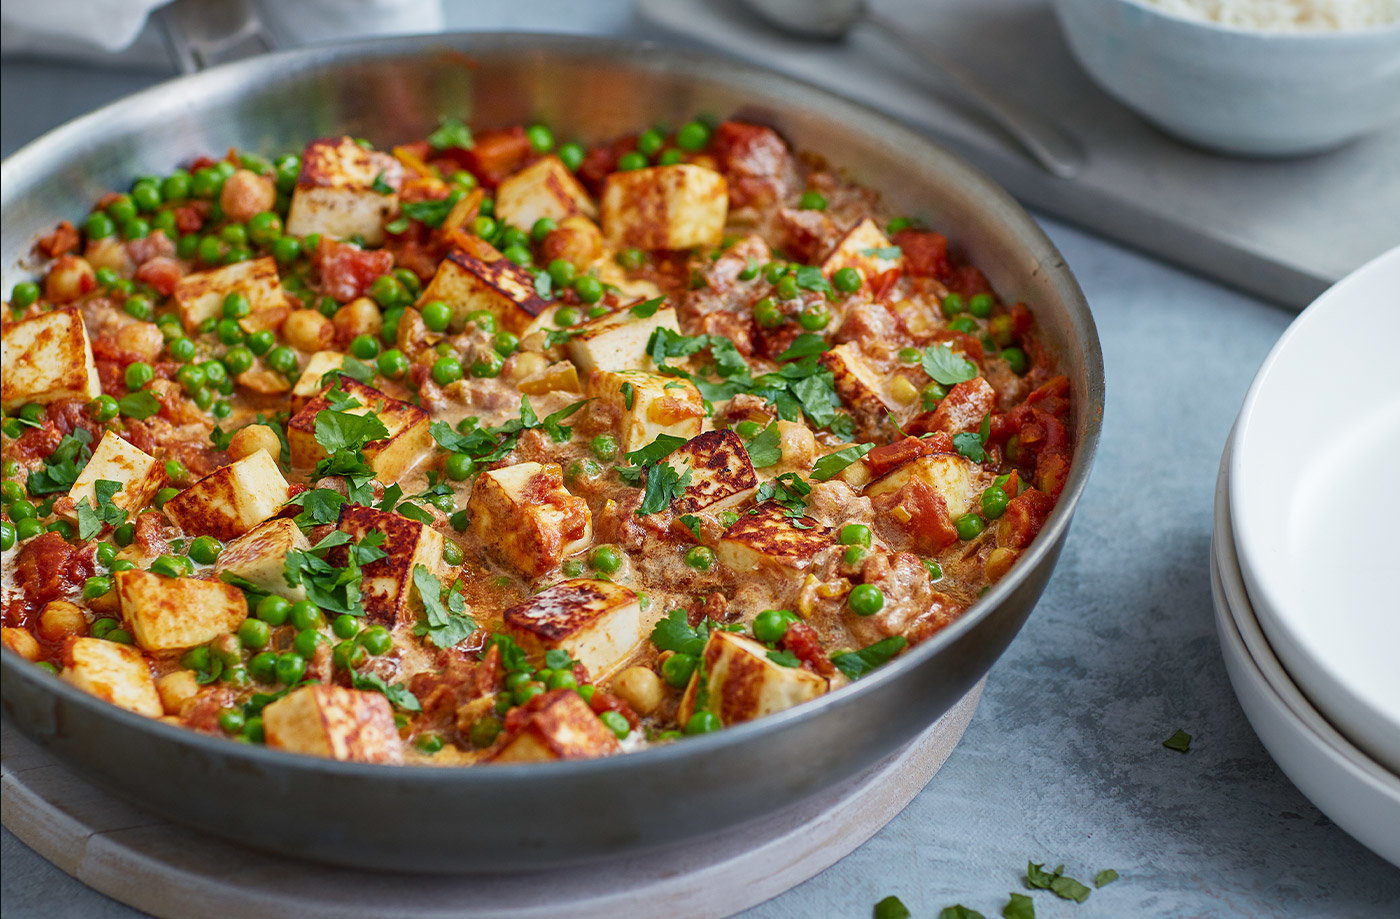 Crumbly and fresh, make Indian paneer cheese the star of the dish in these great paneer recipes.